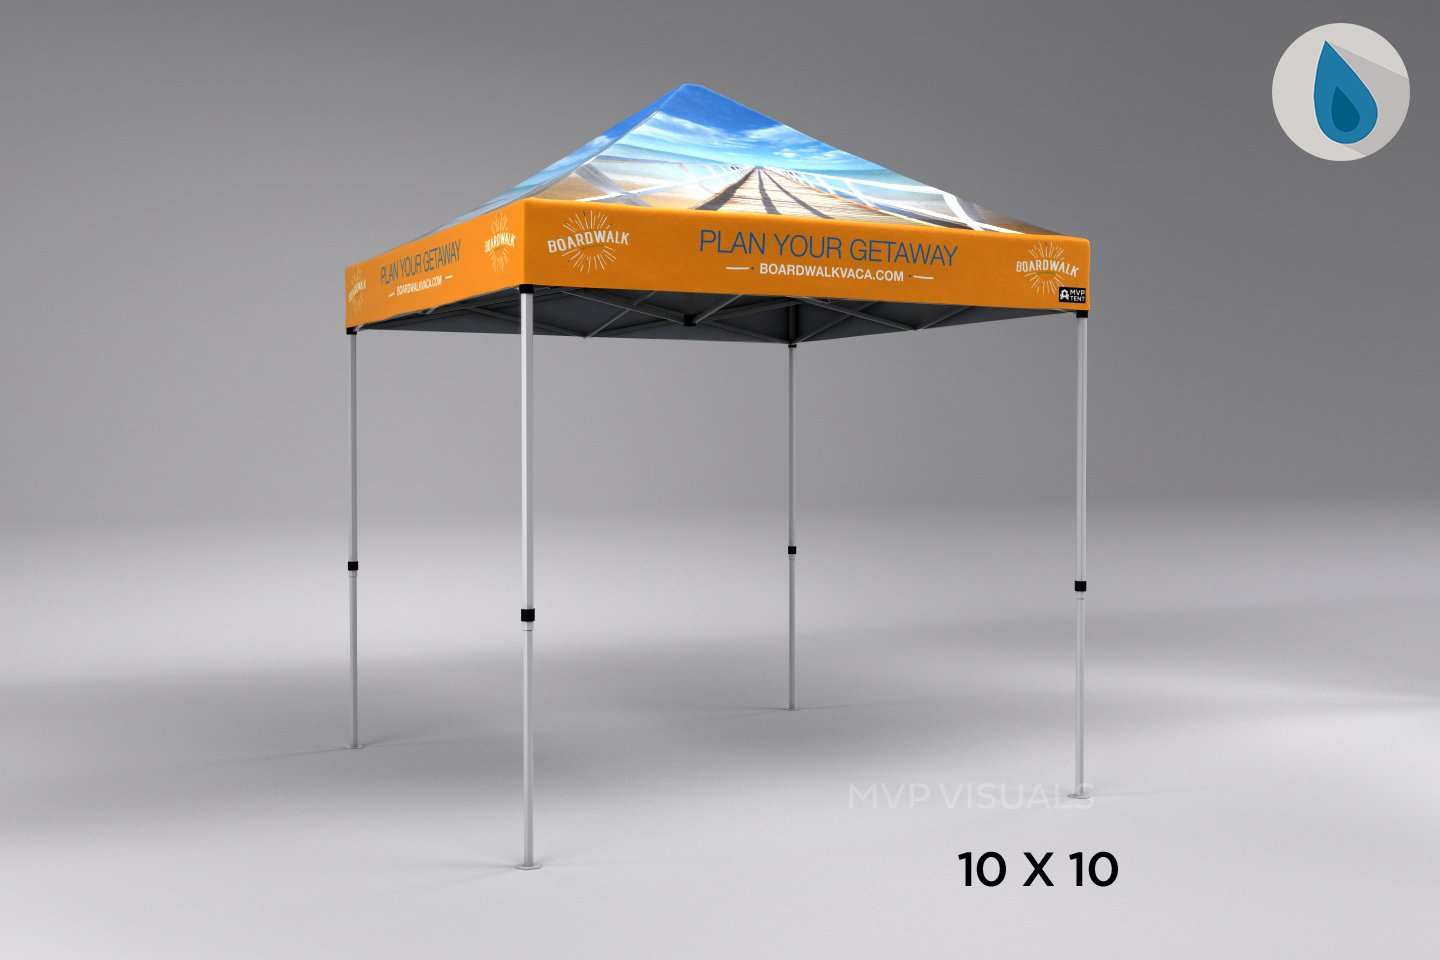 custom pop up tent with logo on PVCdome-shaped polyester tent fabric